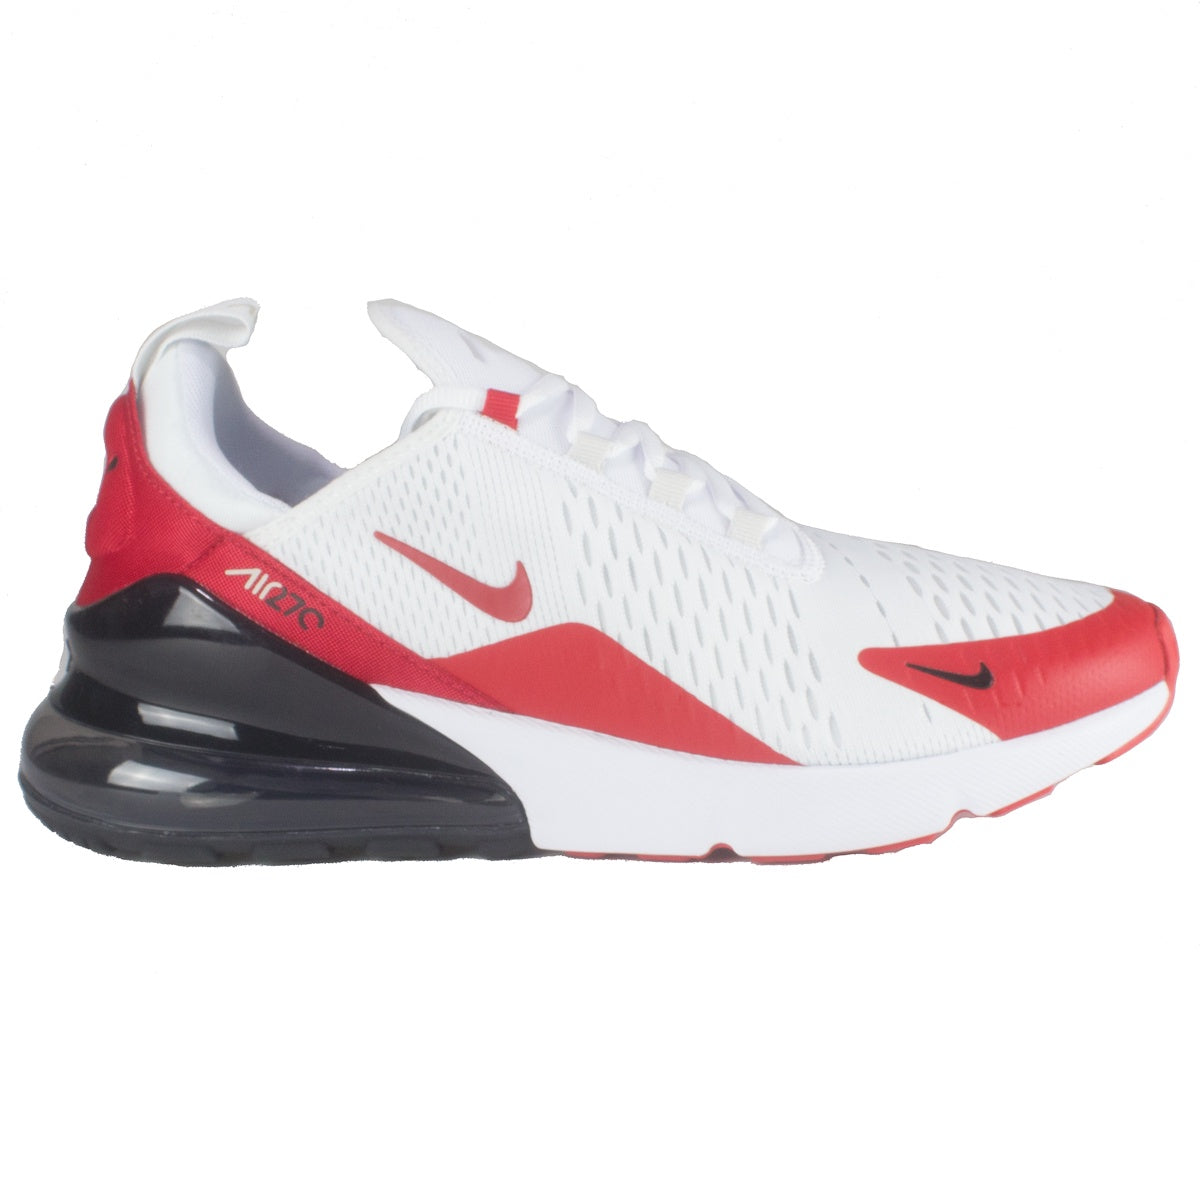 new concept 53cf9 5d256 Nike Air Max 270 White/University Red